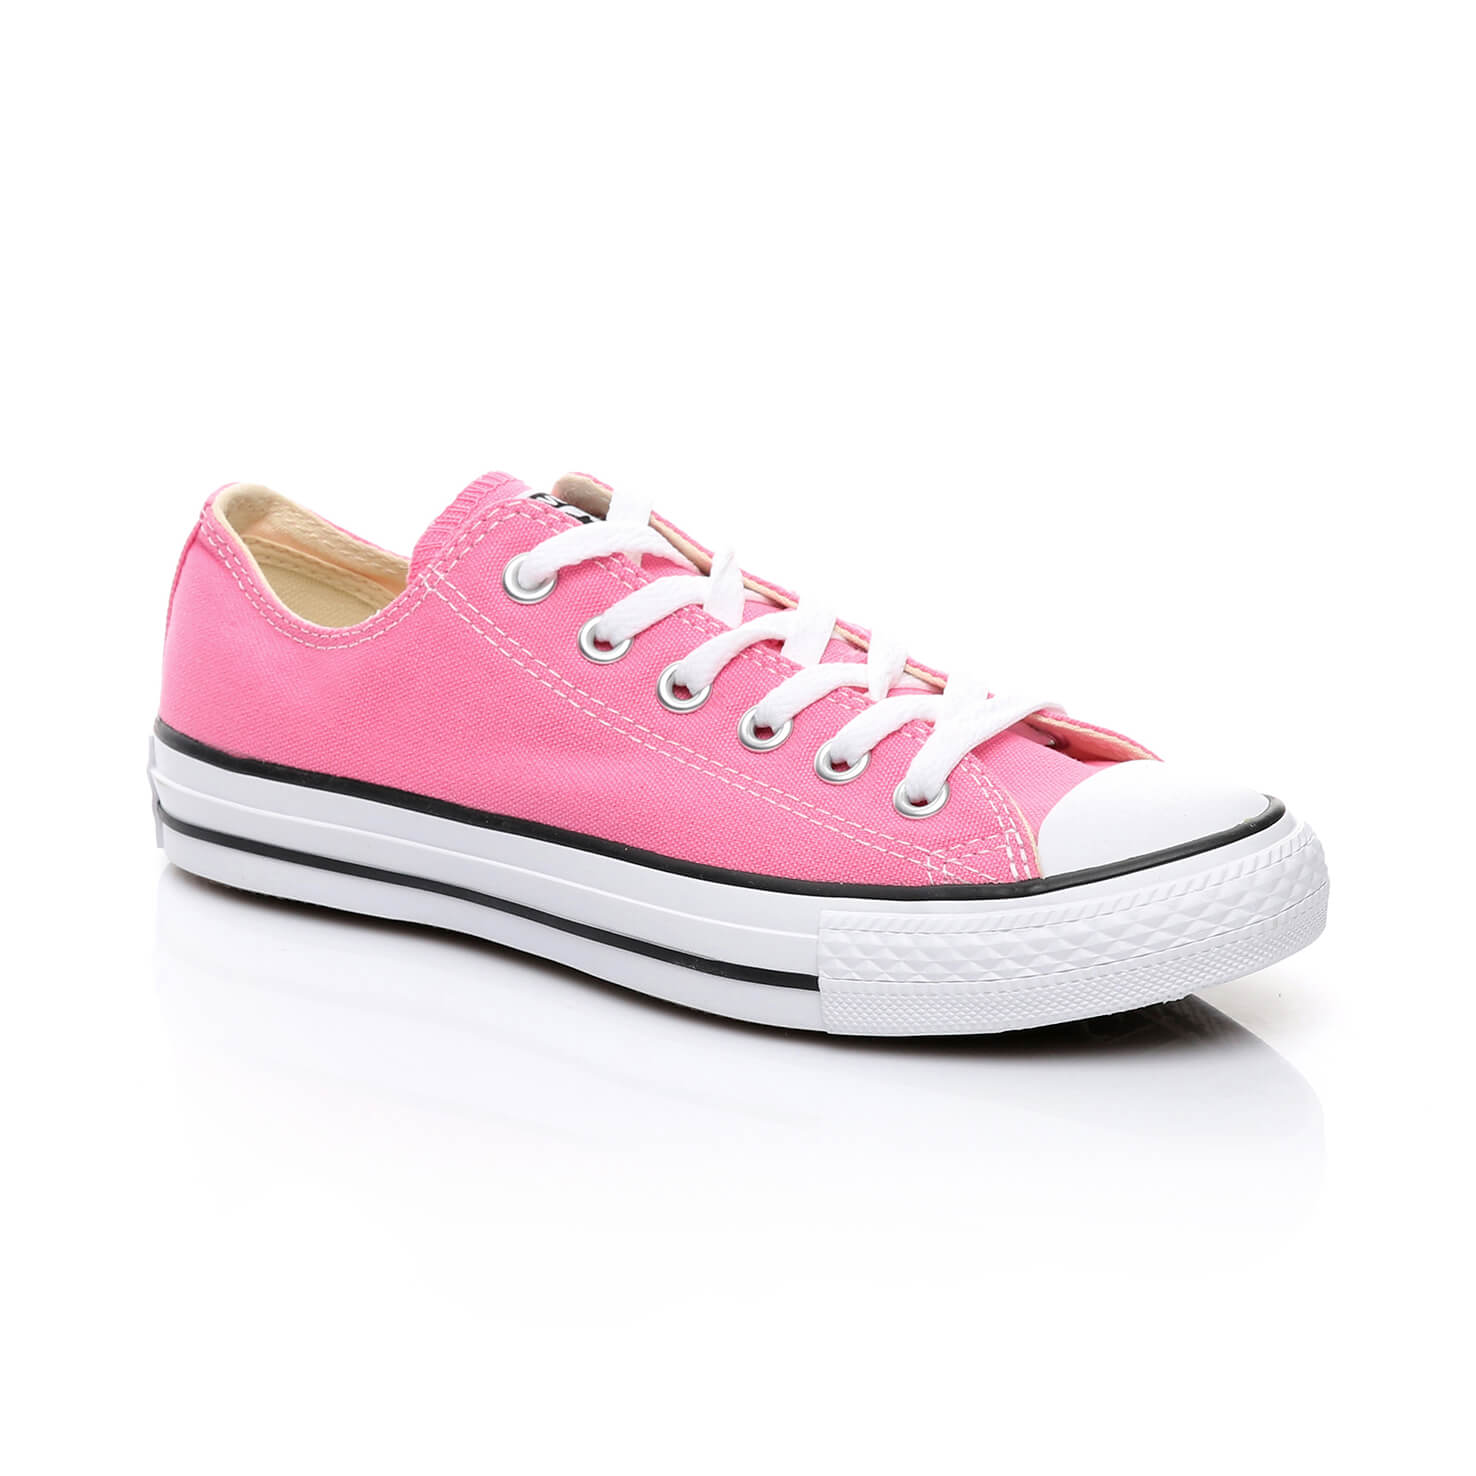 Converse Chuck Taylor All Star Unisex Pembe Sneaker